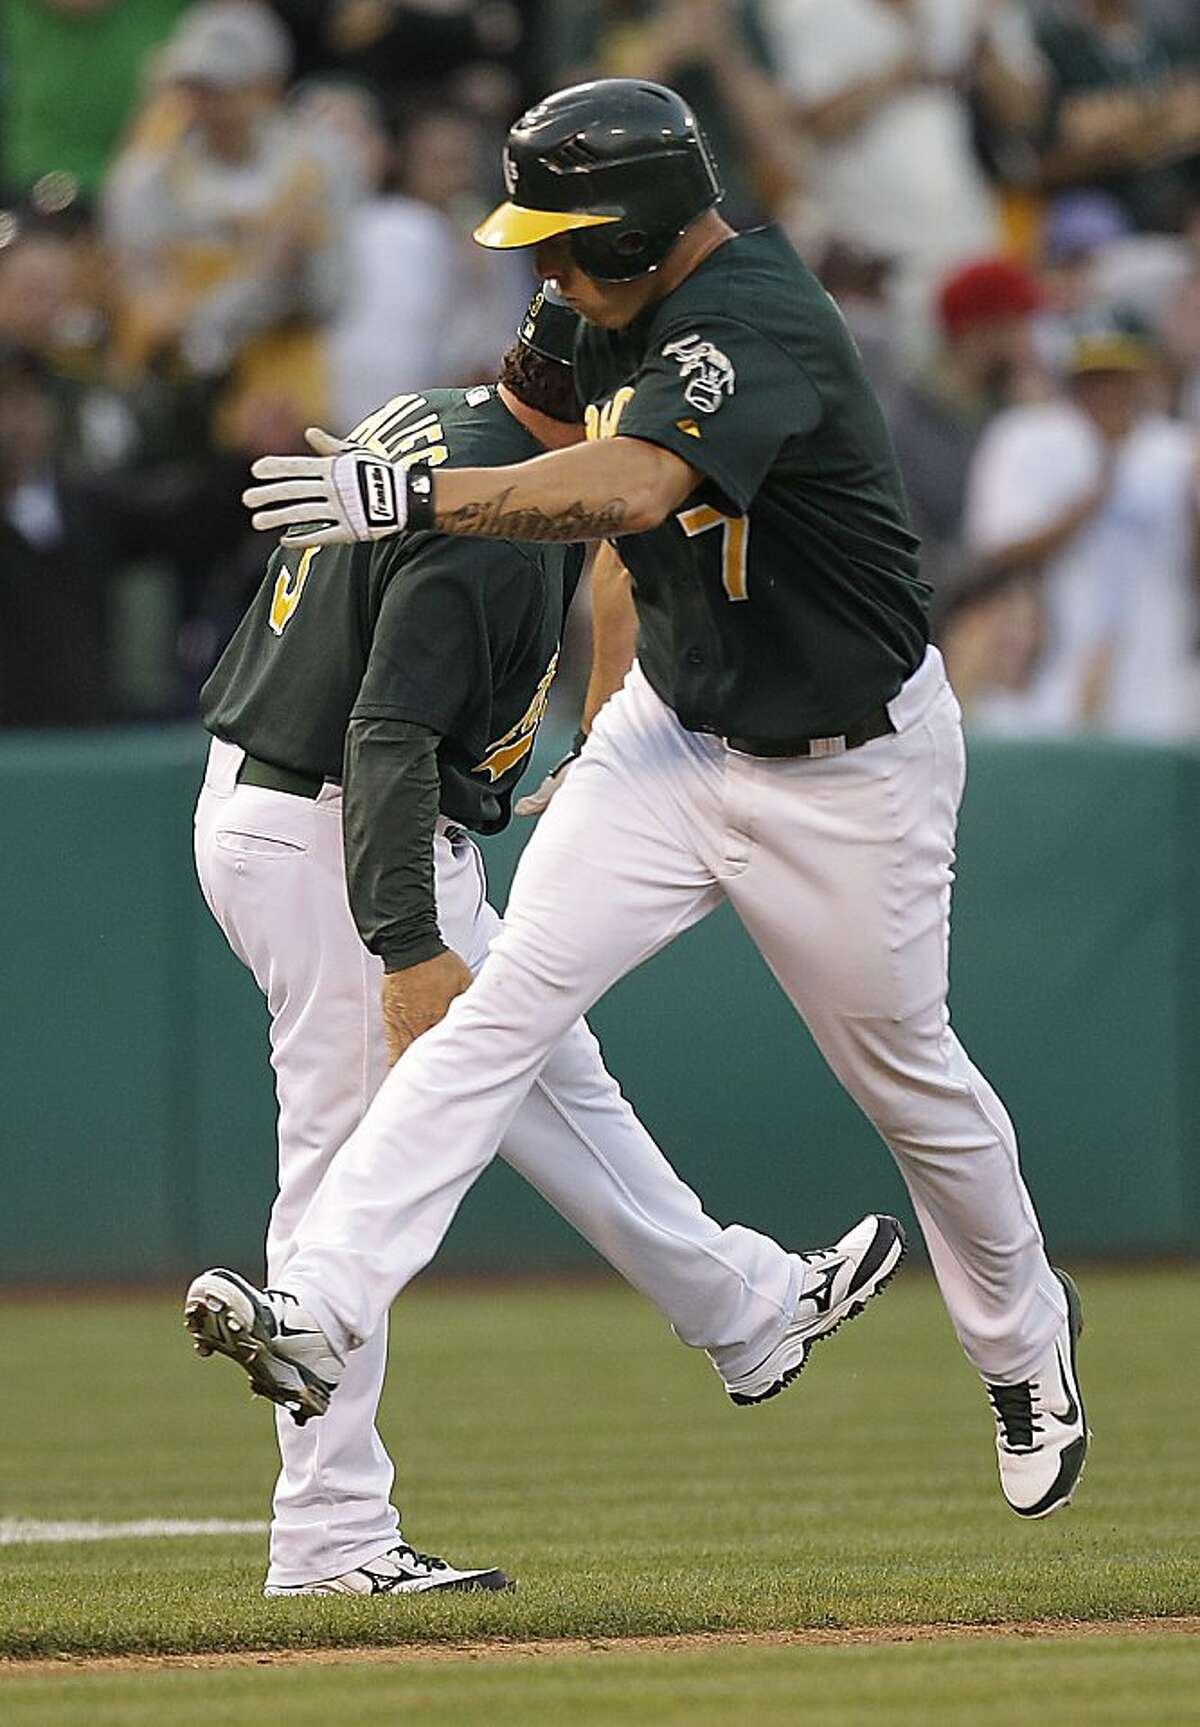 Oakland Athletics' Brandon Inge, right, celebrates with third base coach Mike Gallego after hitting a home run off New York Yankees' Phil Hughes in the eighth inning of a baseball game on Saturday, July 21, 2012, in Oakland, Calif. (AP Photo/Ben Margot)